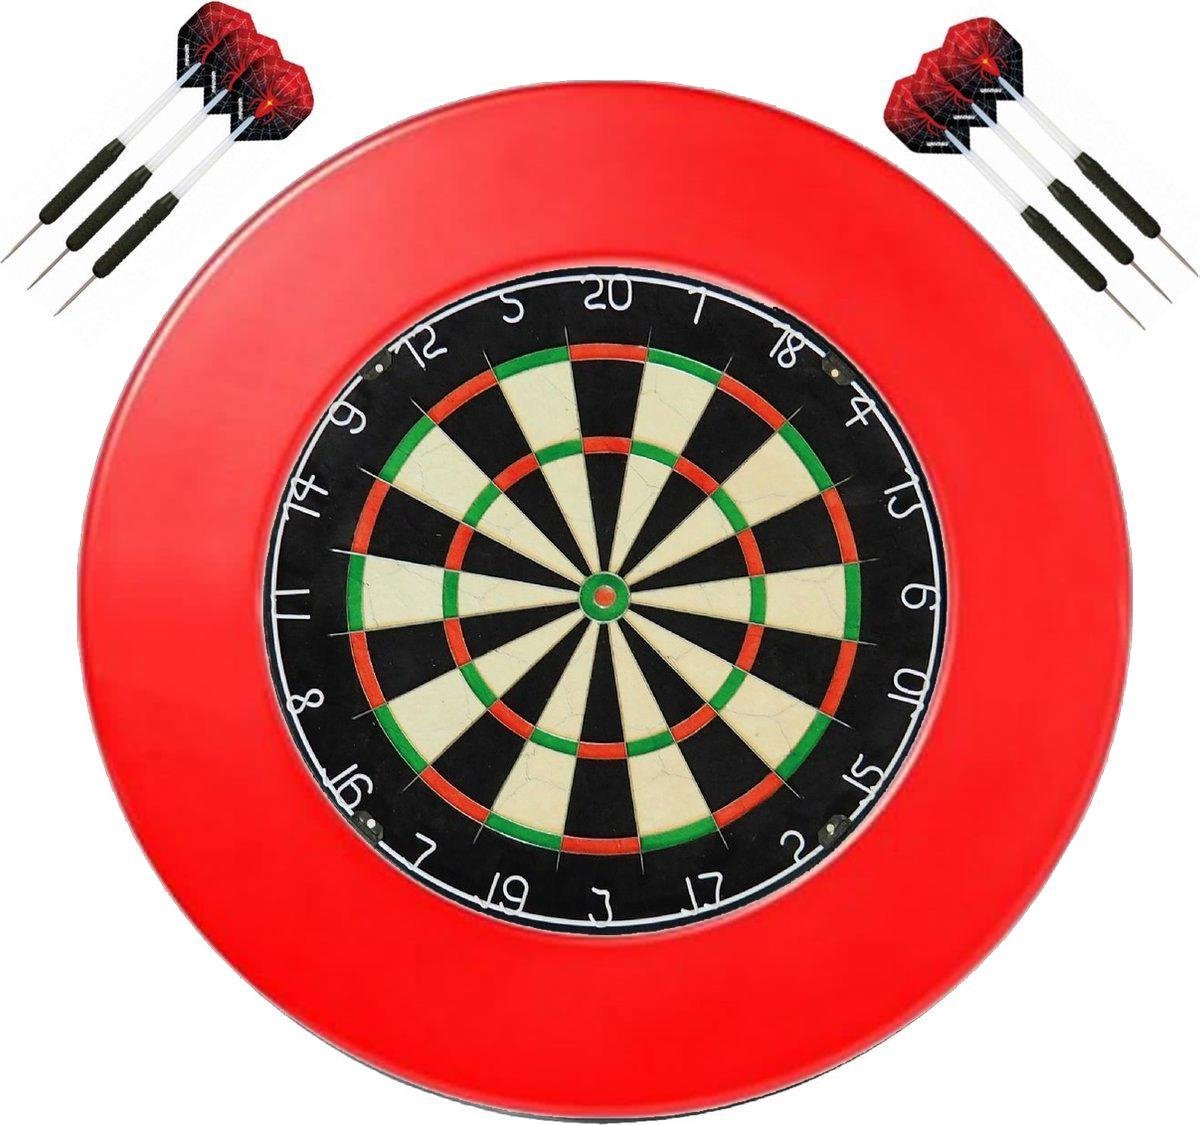 A-merk Dragon darts - dartbord - (BEST getest) + surround ring rood + 2 sets Dragon Spider - dartpijlen